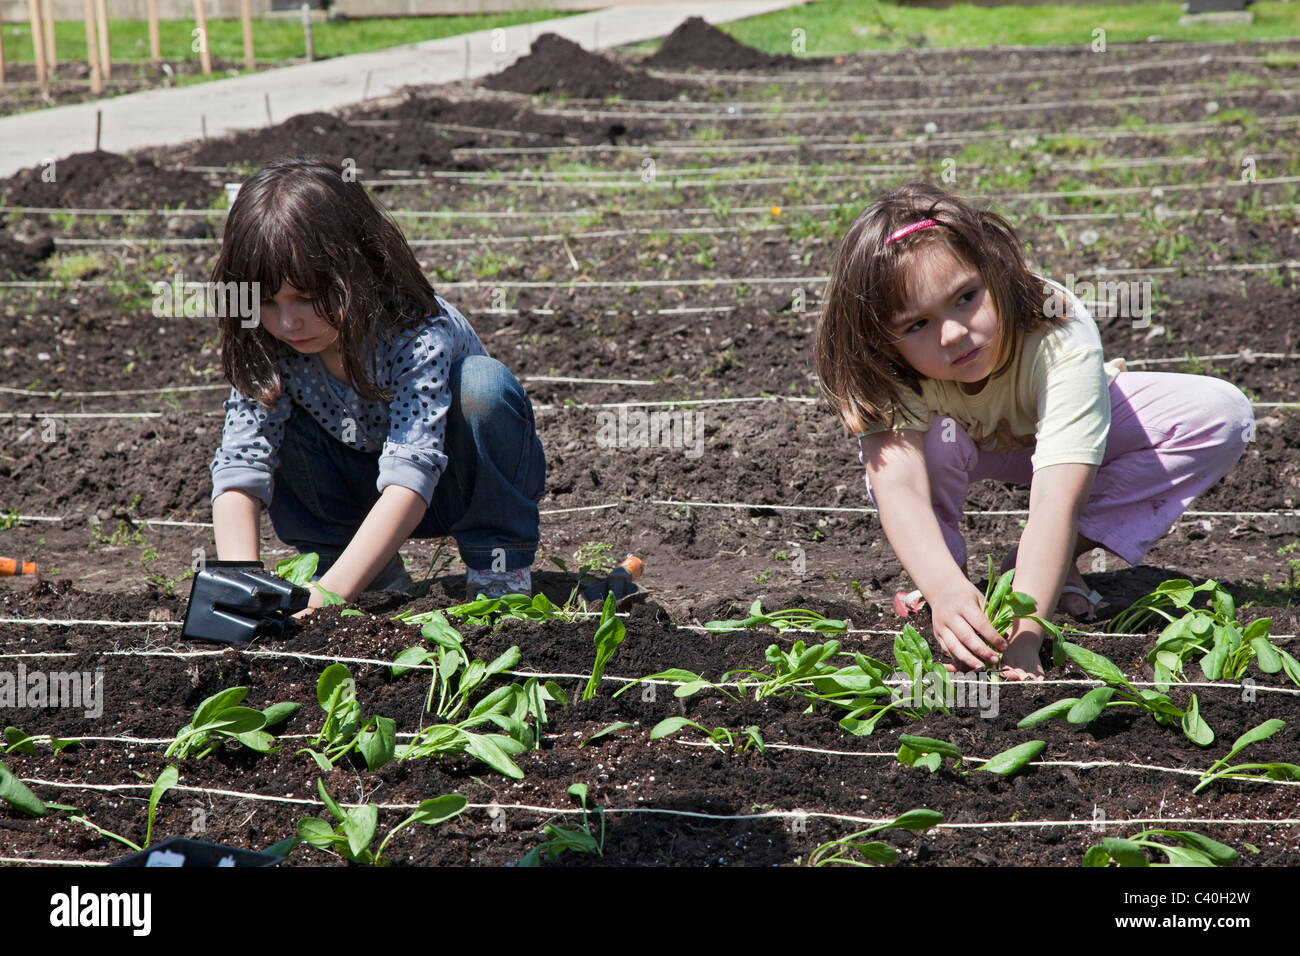 Girl Scouts Help Plant Garden to Grow Produce for Community Food Bank - Stock Image